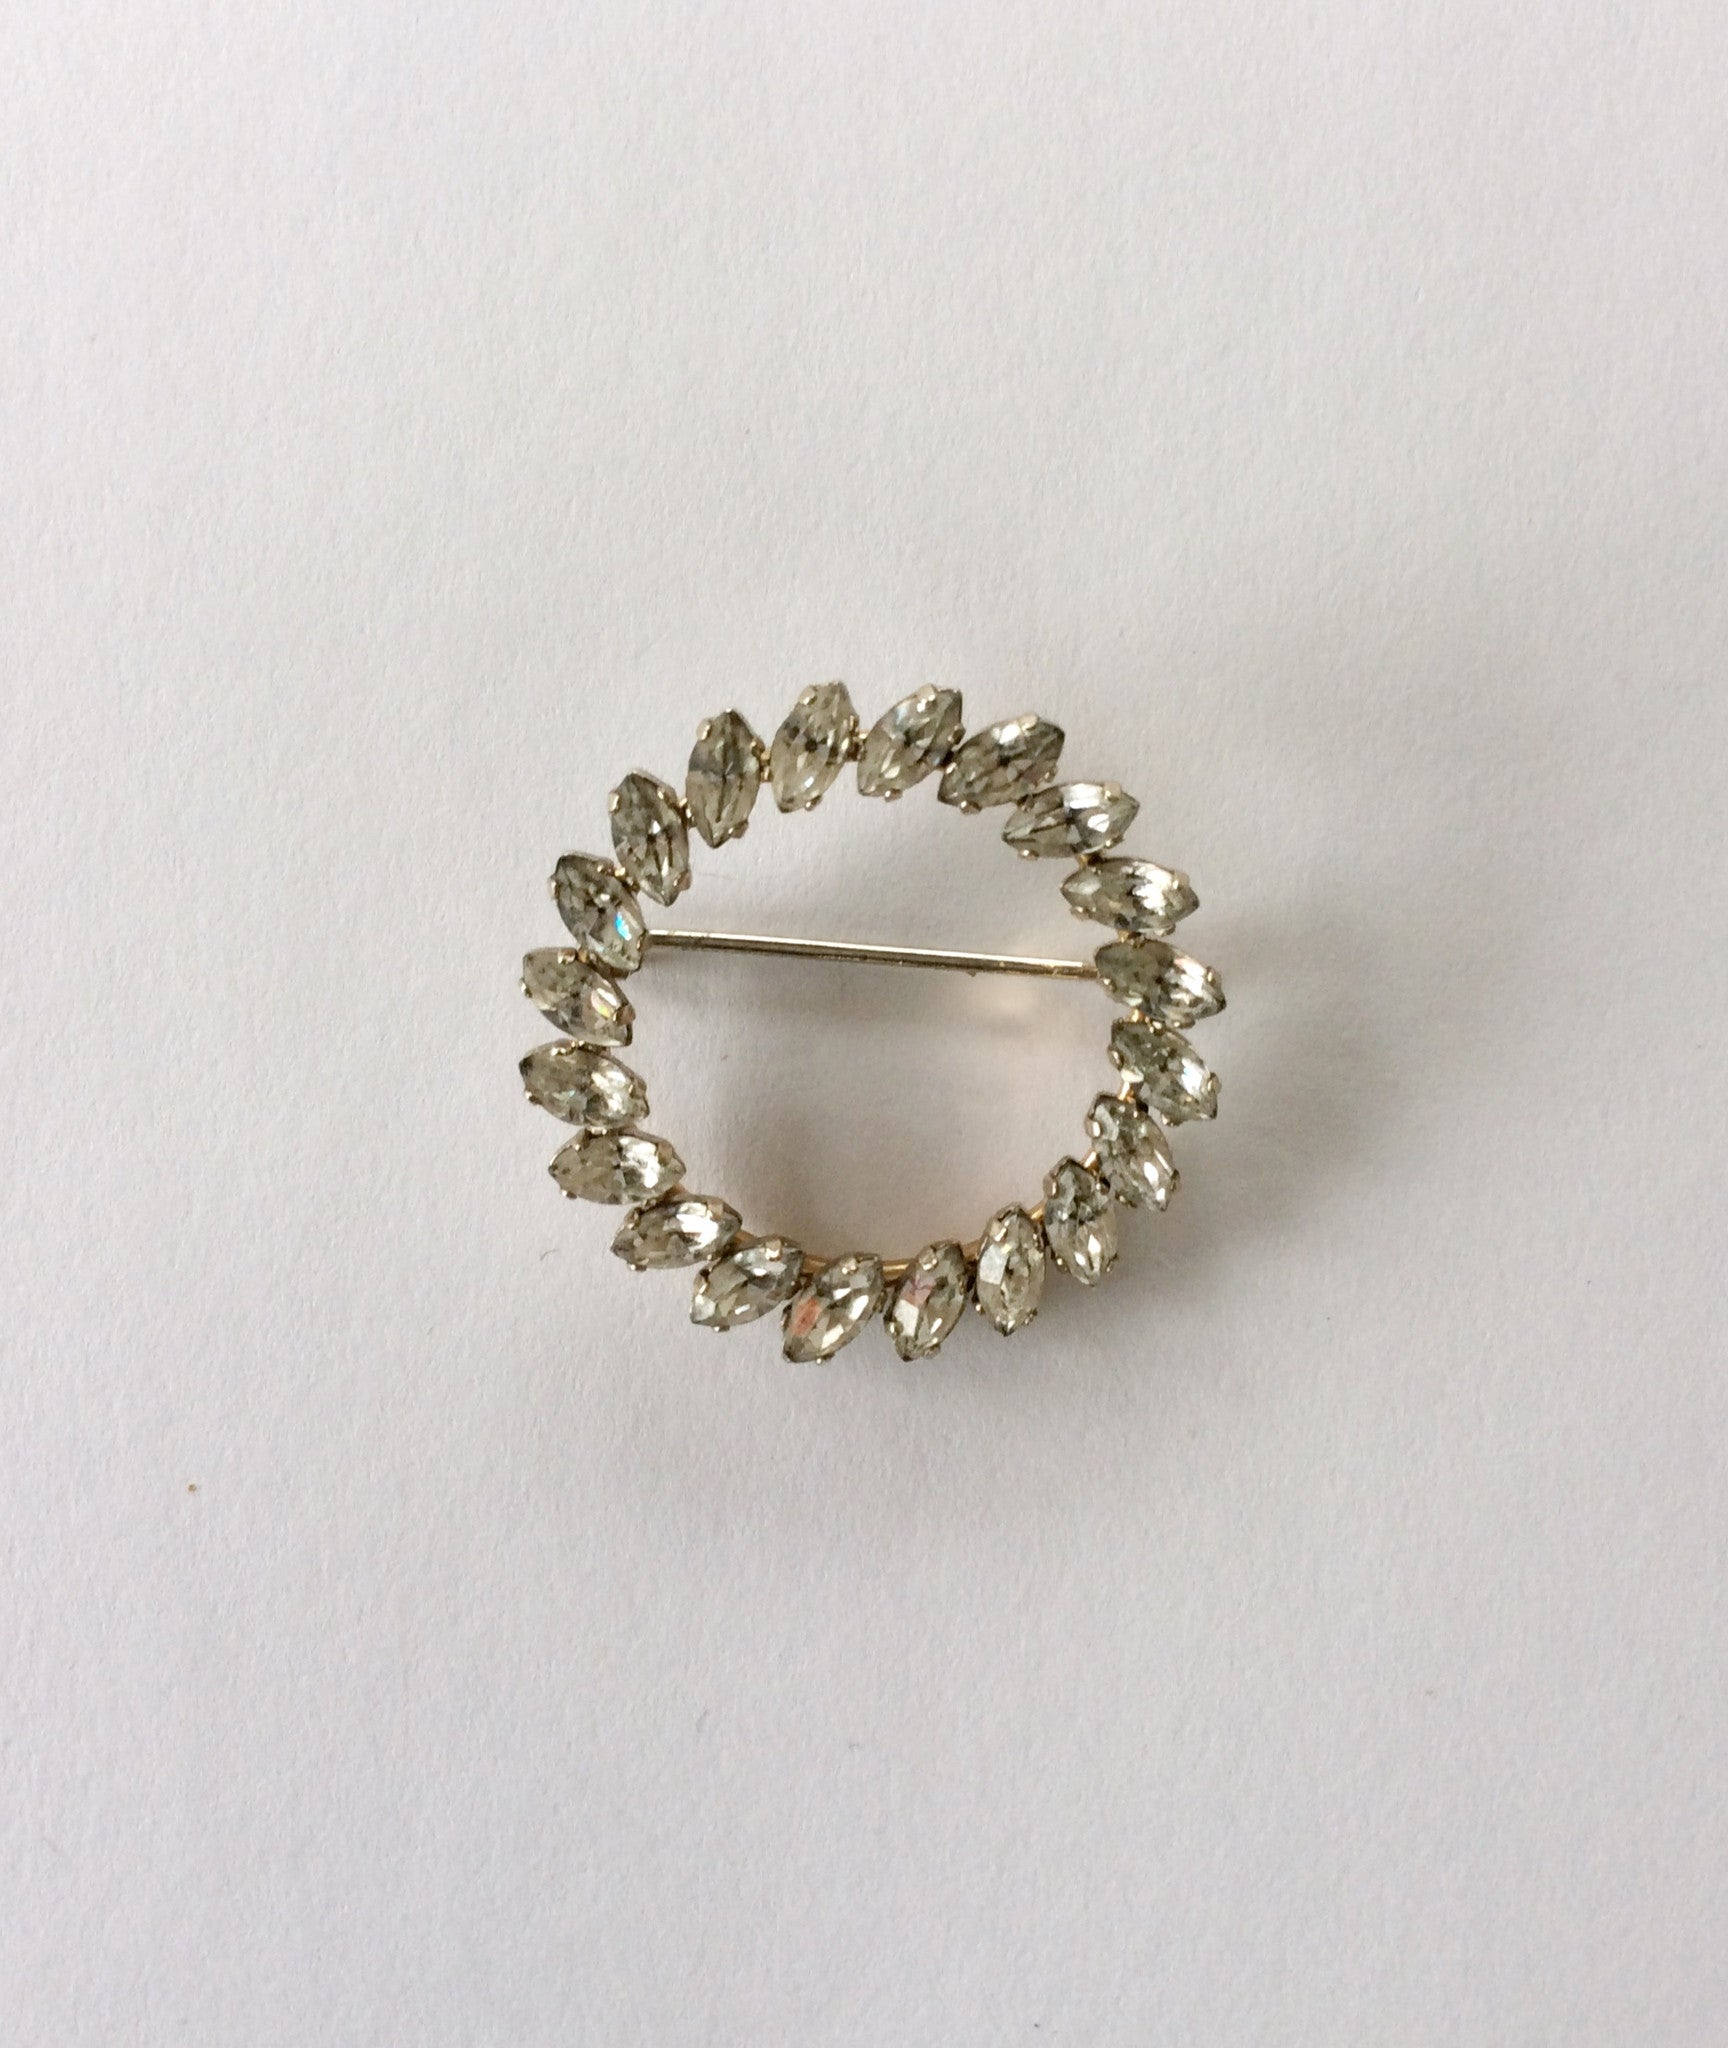 Rhinestone Wreath Pin